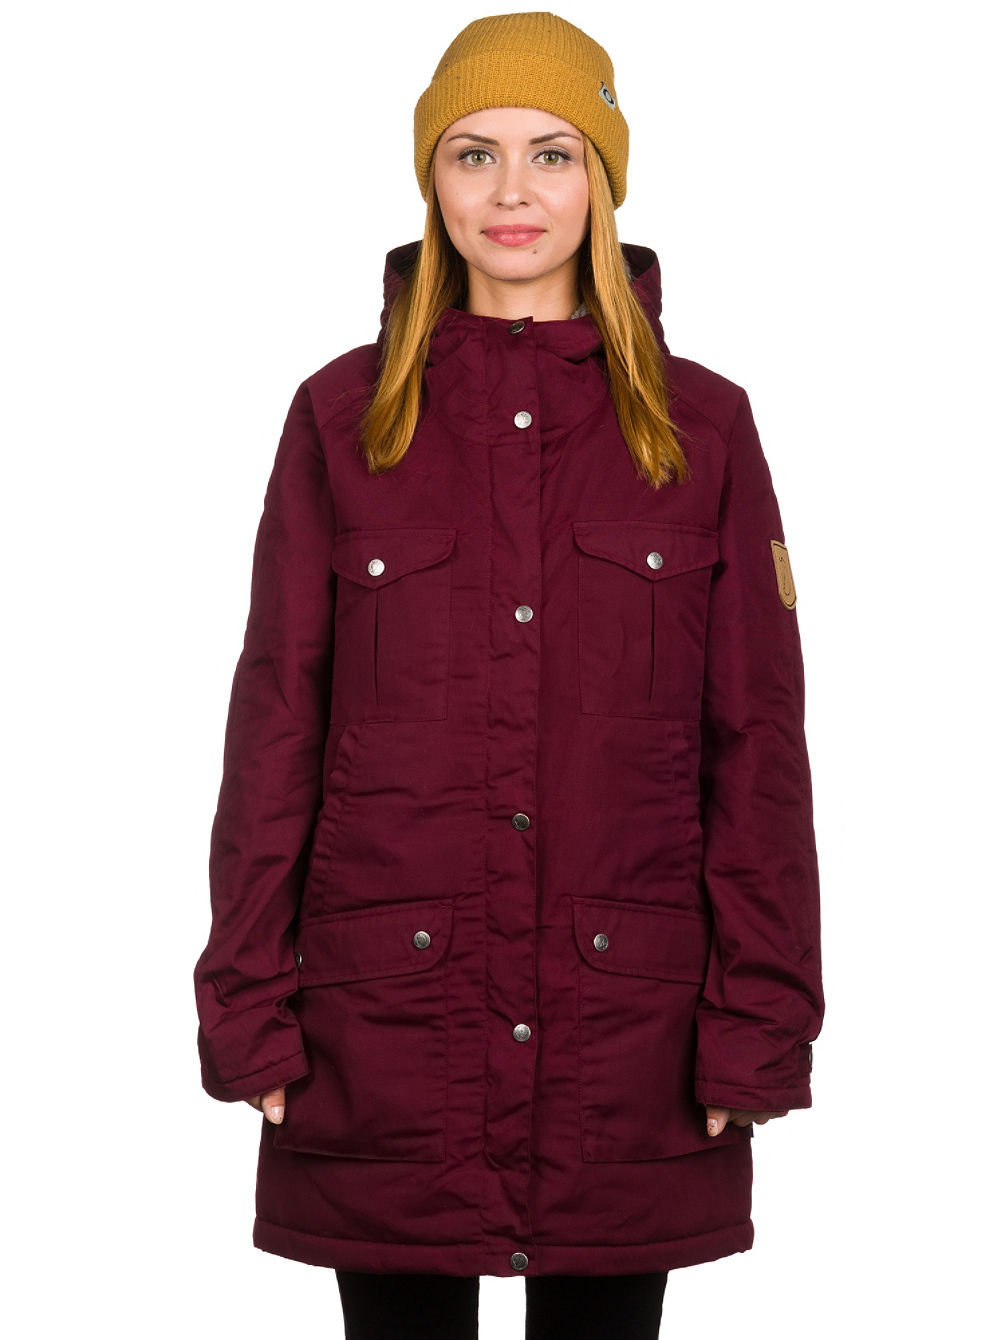 Buy Fjällräven Greenland Winter Parka Coat online at blue-tomato.com